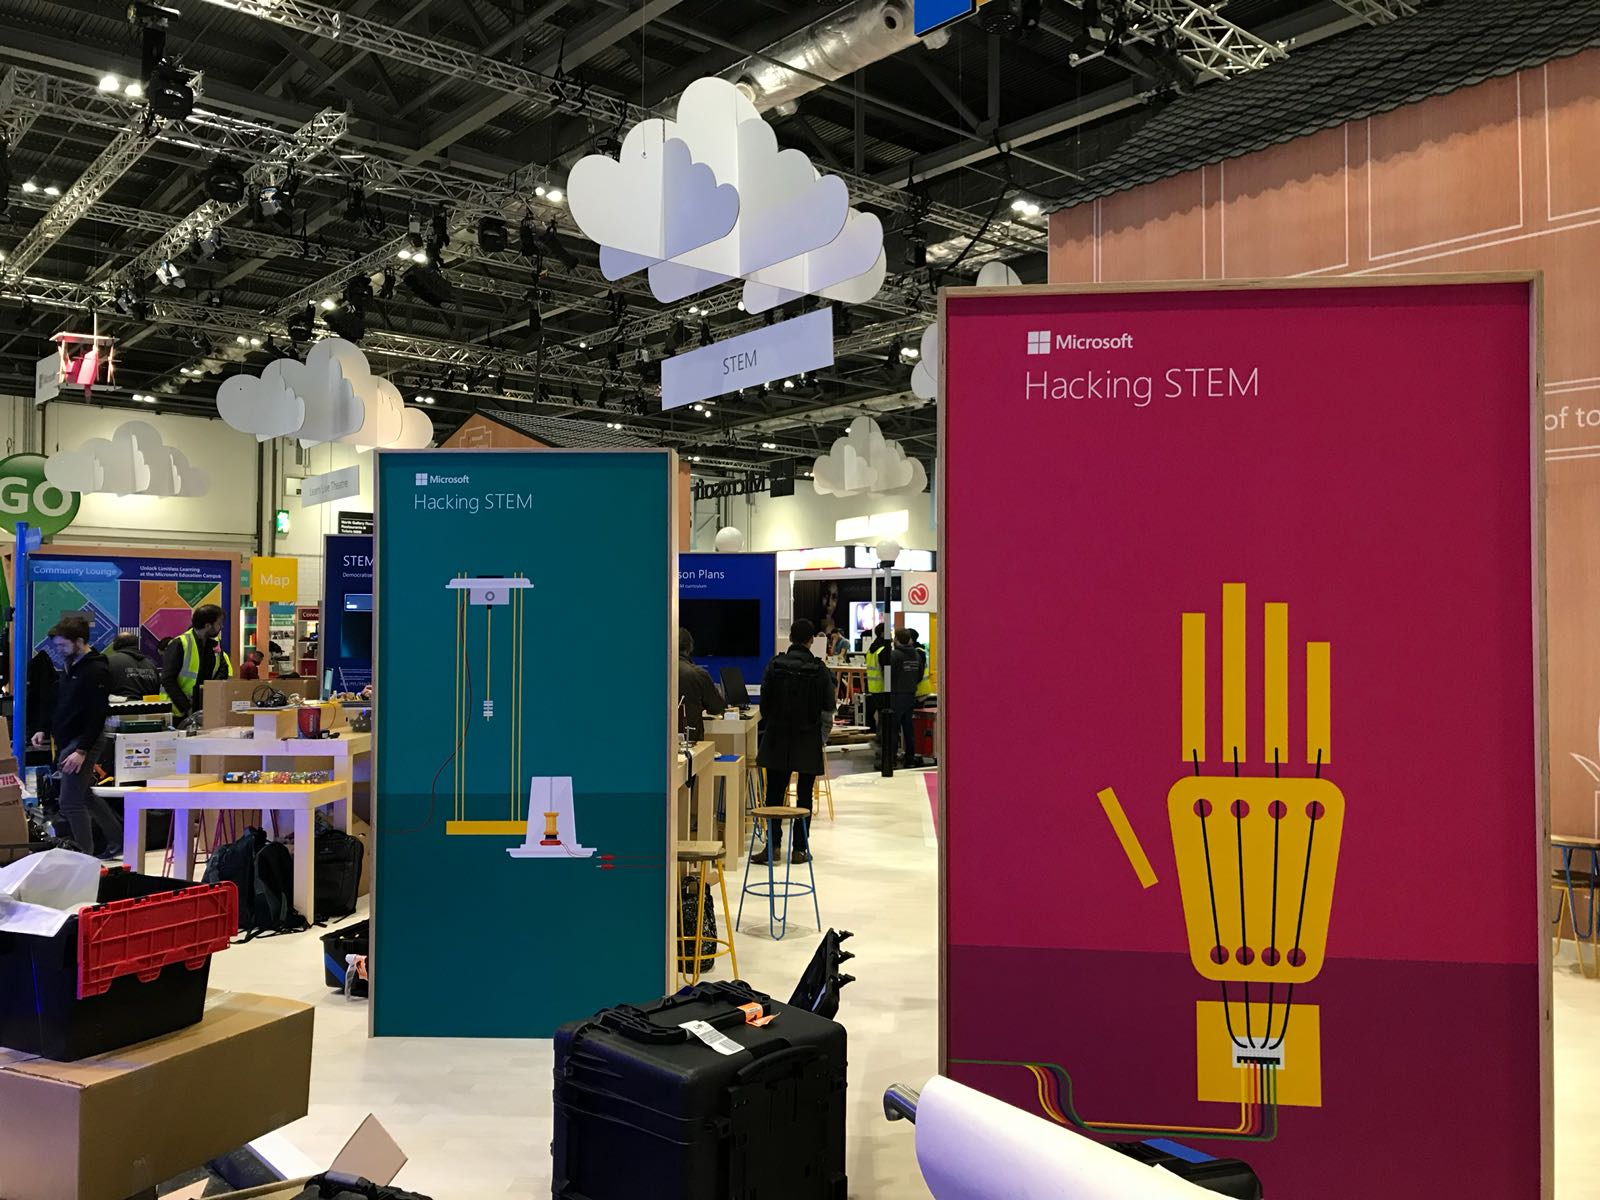 Microsoft Hacking Stem On Twitter Hackingstem Booth At Bett 2018 Is All Set Our Innovators Teachers And Software Experts Have Partnered Yet Again To Bring You A Lesson That Democratizes Stem Catch Us Live On The Bett Floor Or Catch Us Here